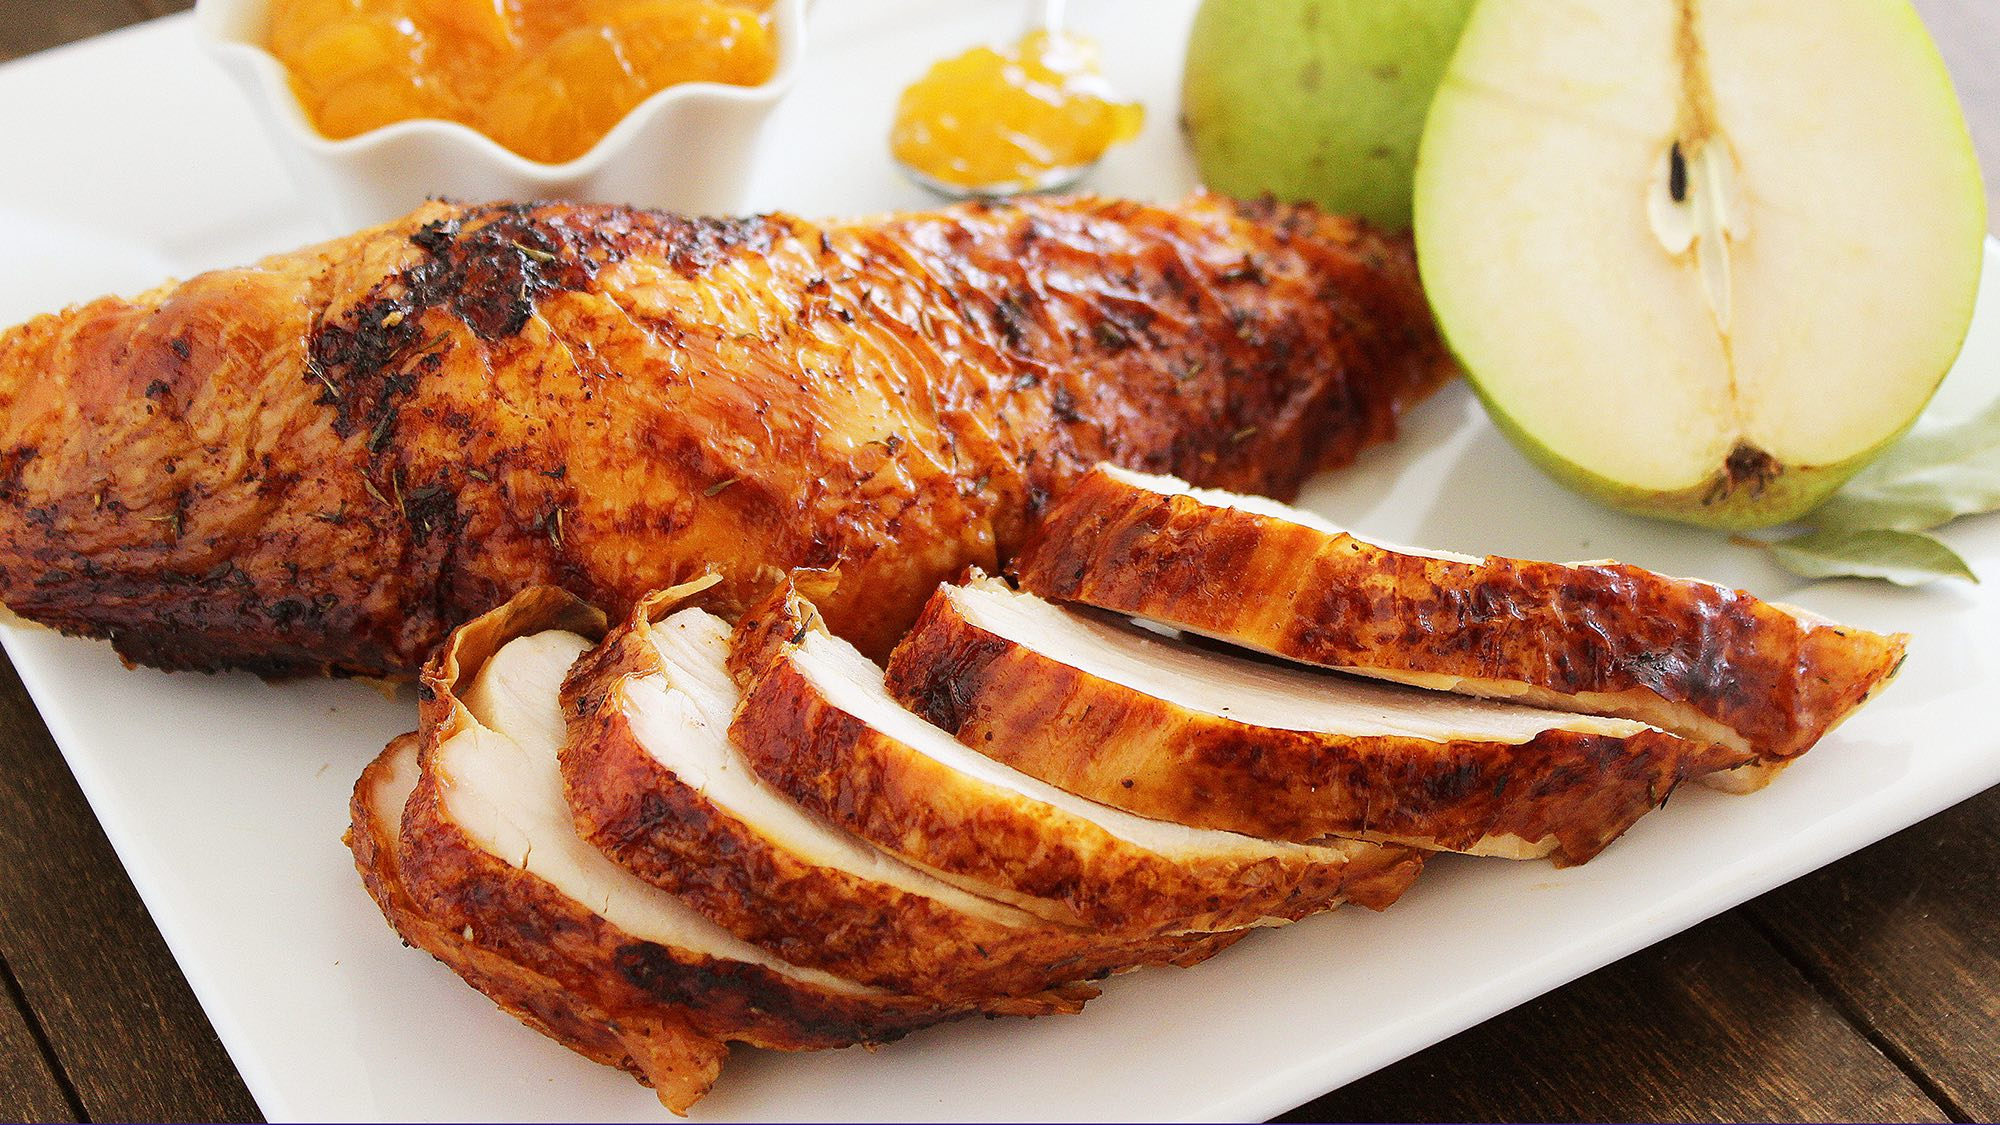 bay-leaf-and-honey-glazed-turkey-with-pear-chutney.jpg